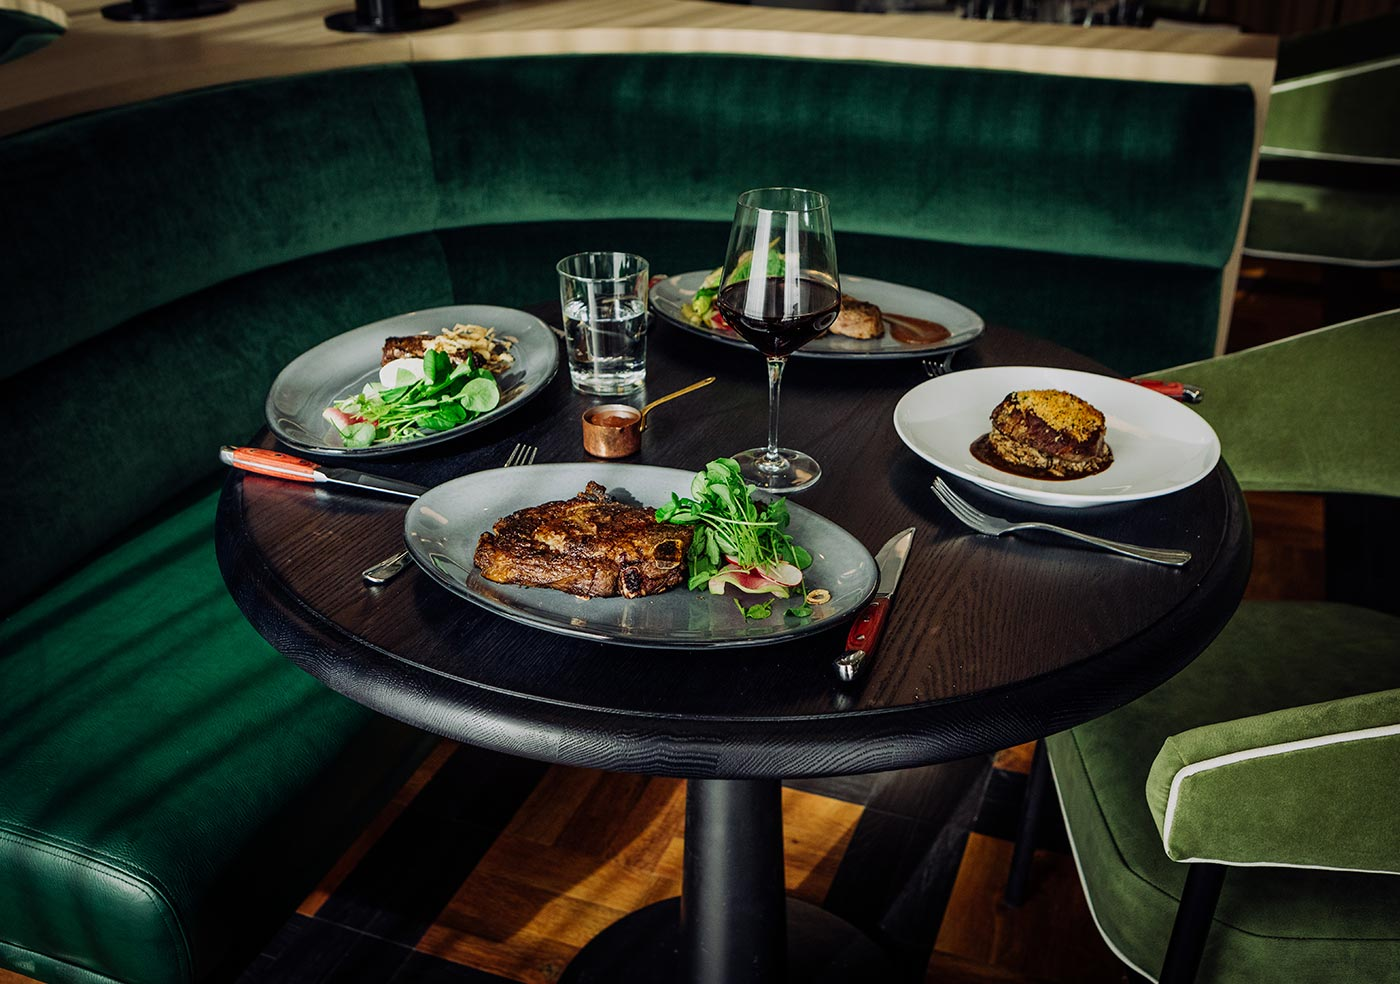 round table with a green suede booth and a green suede chair